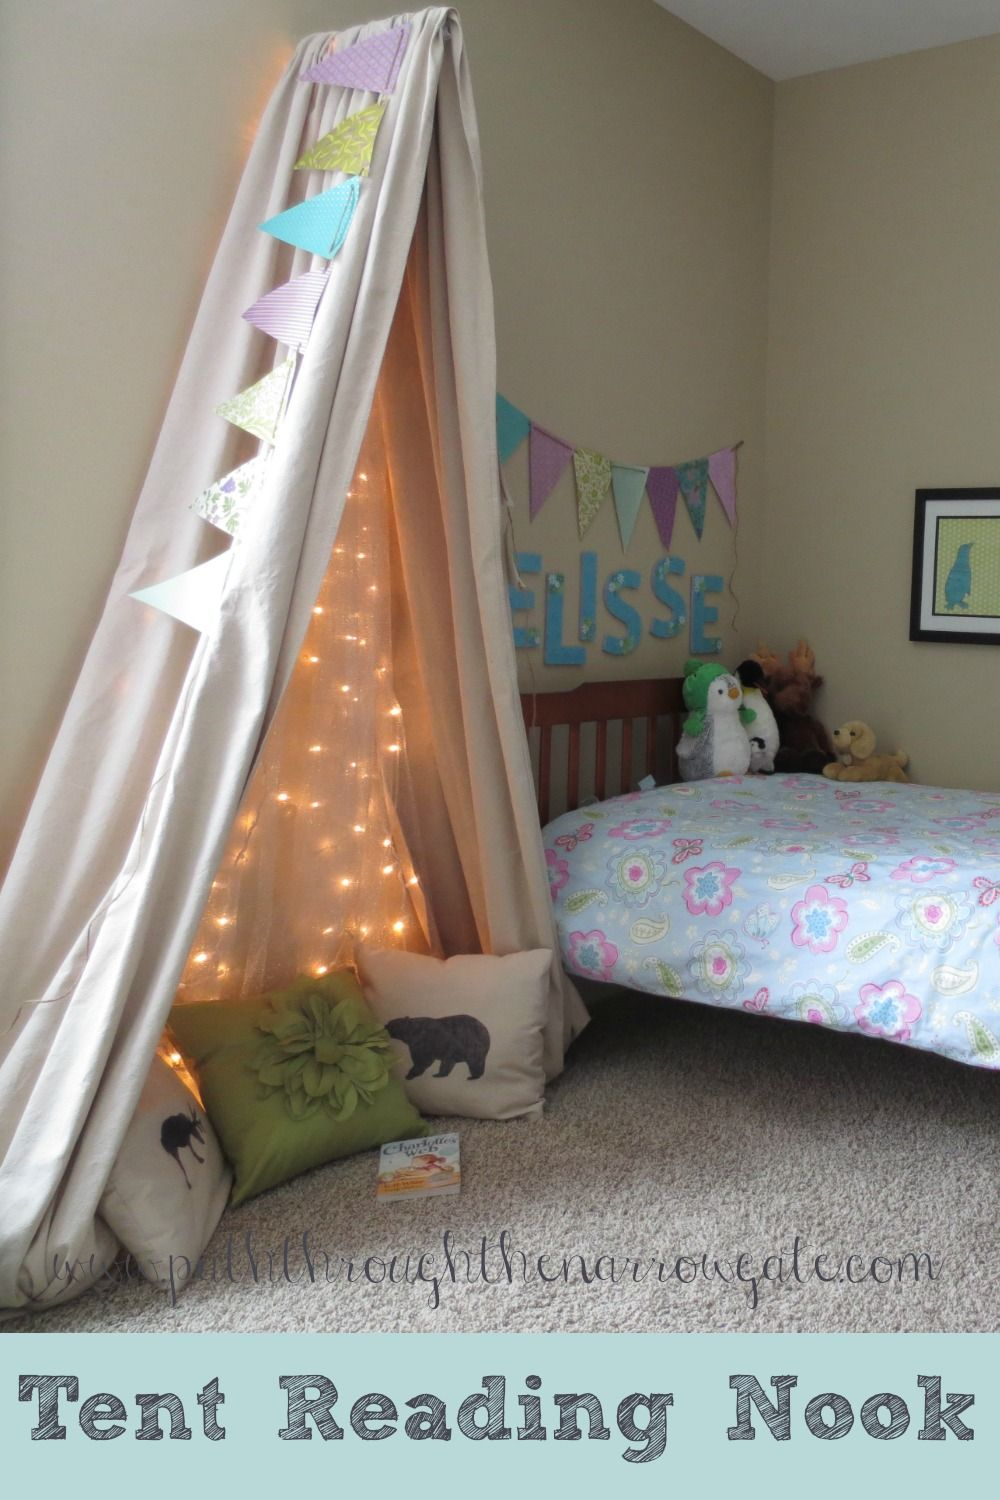 25 sweet reading nook ideas for girls nice pinterest reading rh pinterest com Bedroom Fort Ideas Tent Bedroom Ideas with Two Poles Only